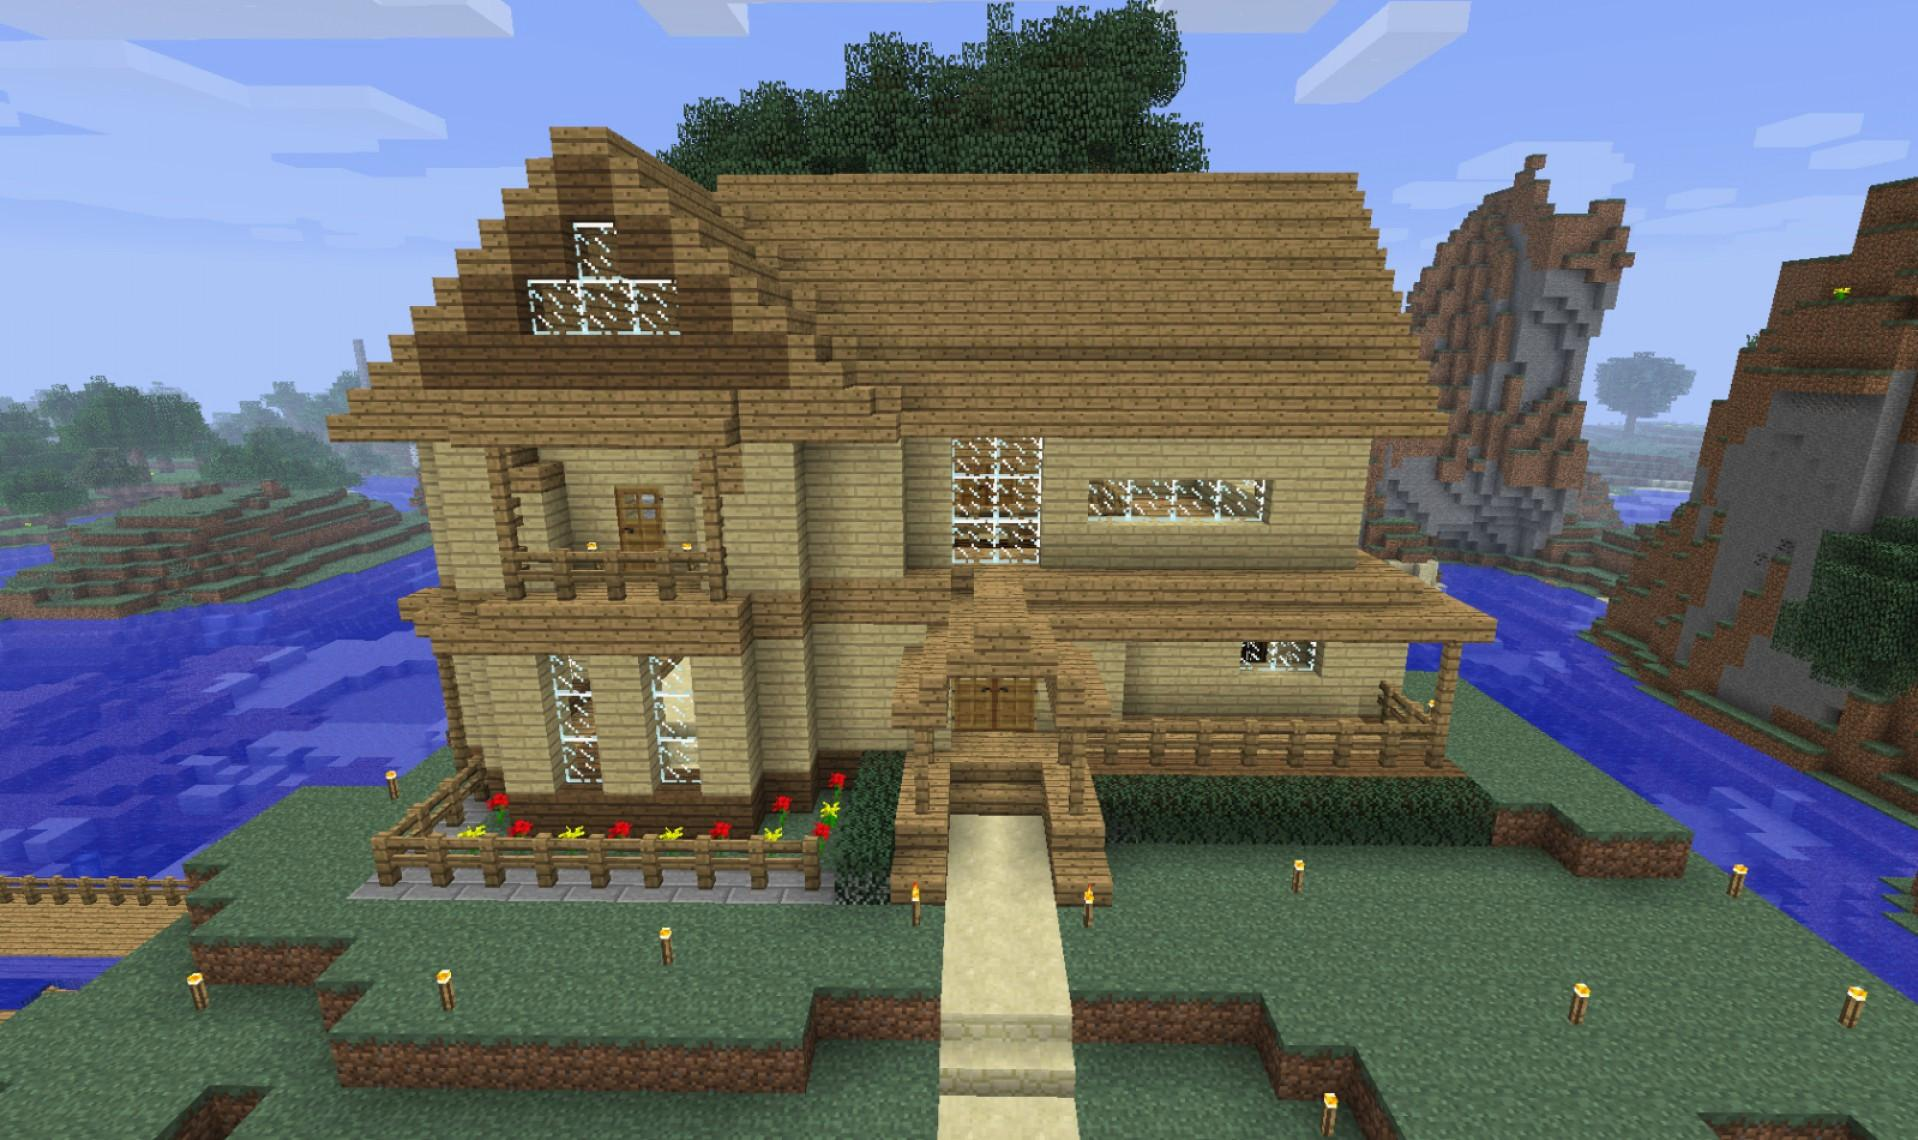 Oak House Design Minecraft Rumah Joglo Limasan Work